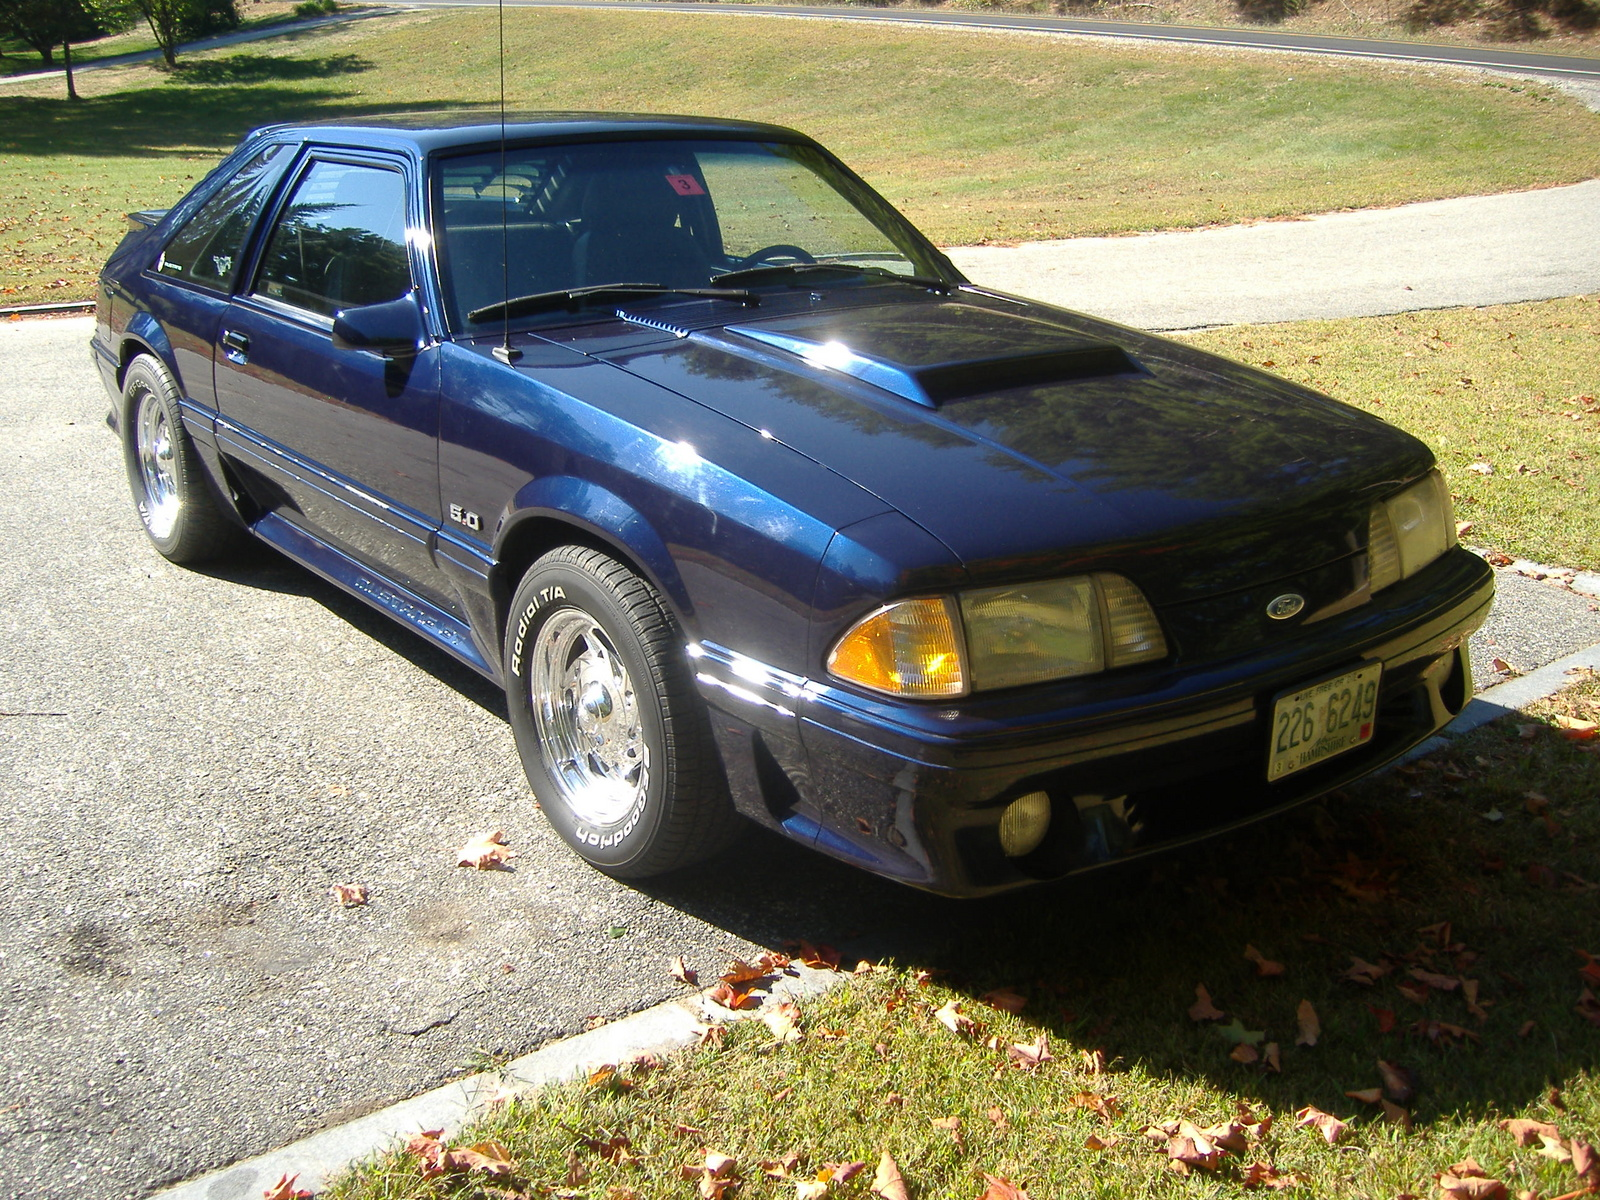 1988 Ford Mustang GT picture, exterior